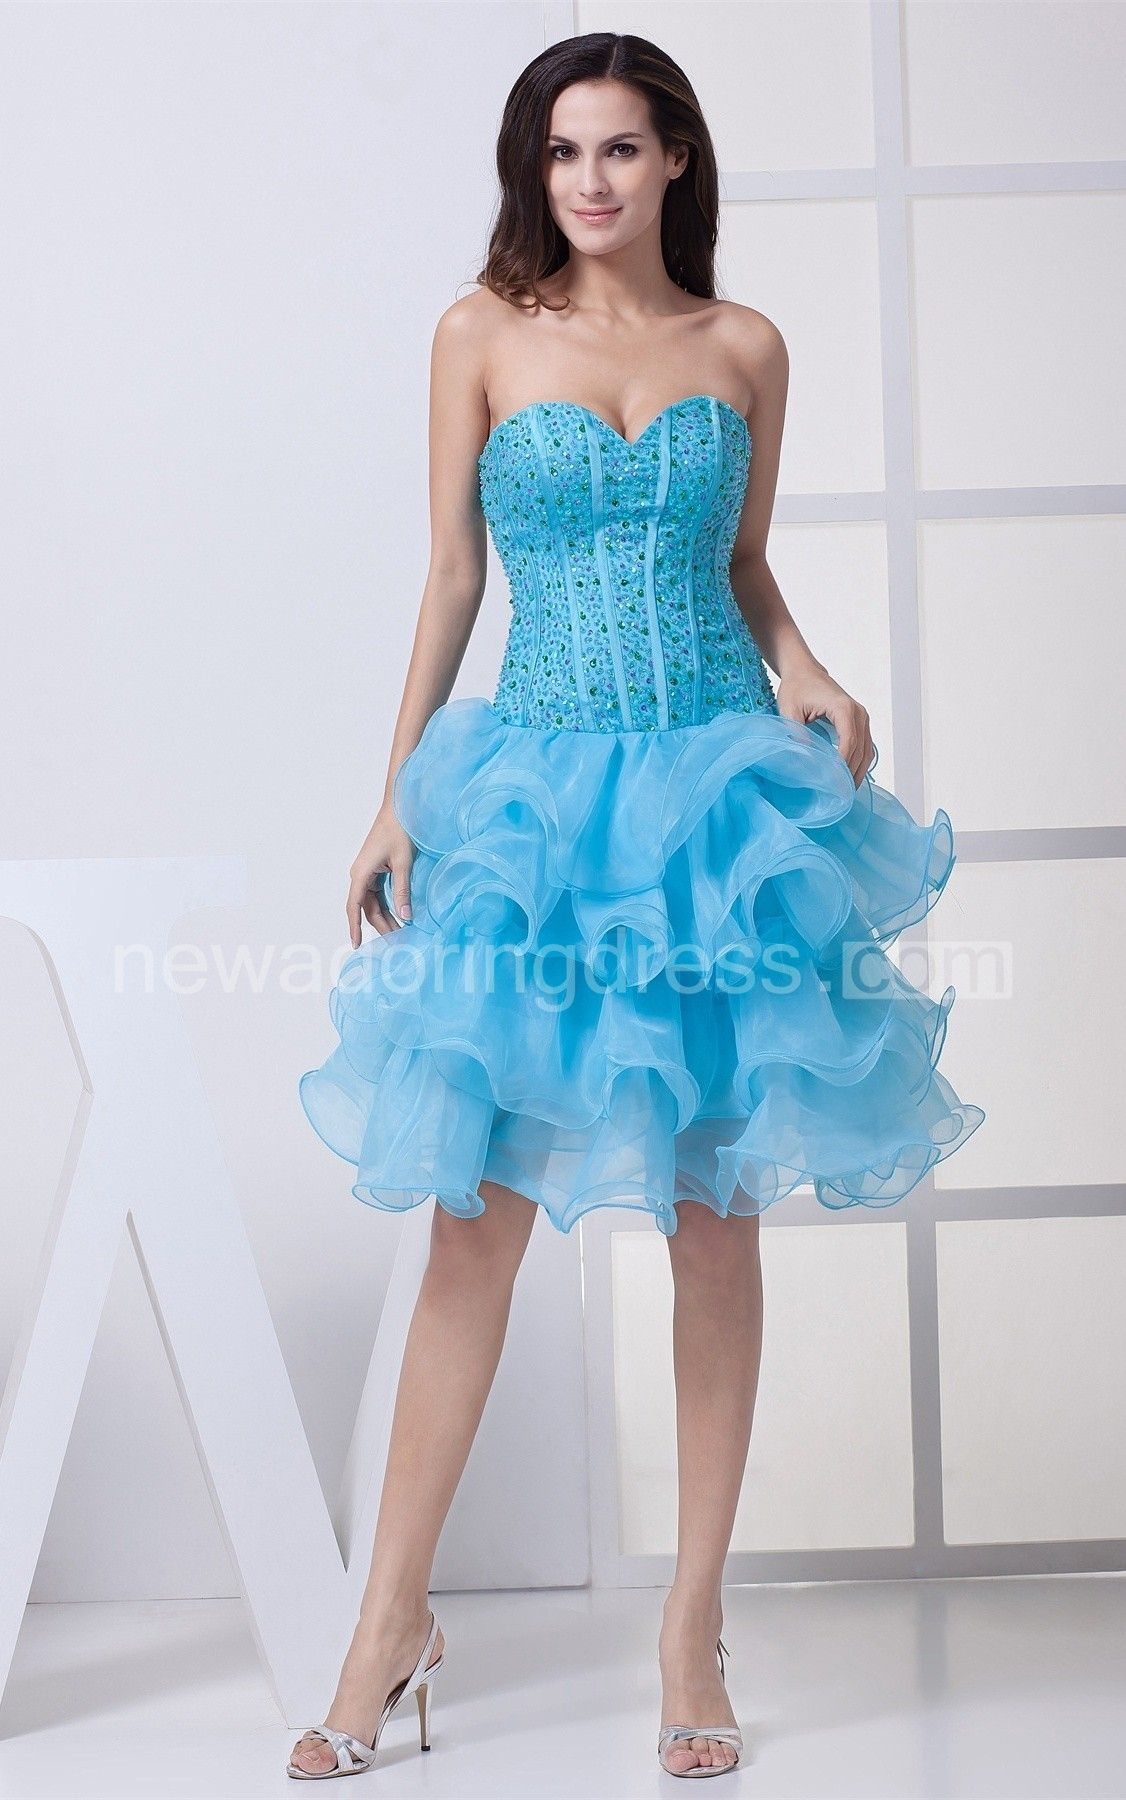 Sweetheart ruffled midi dress with gemmed bodice homecoming